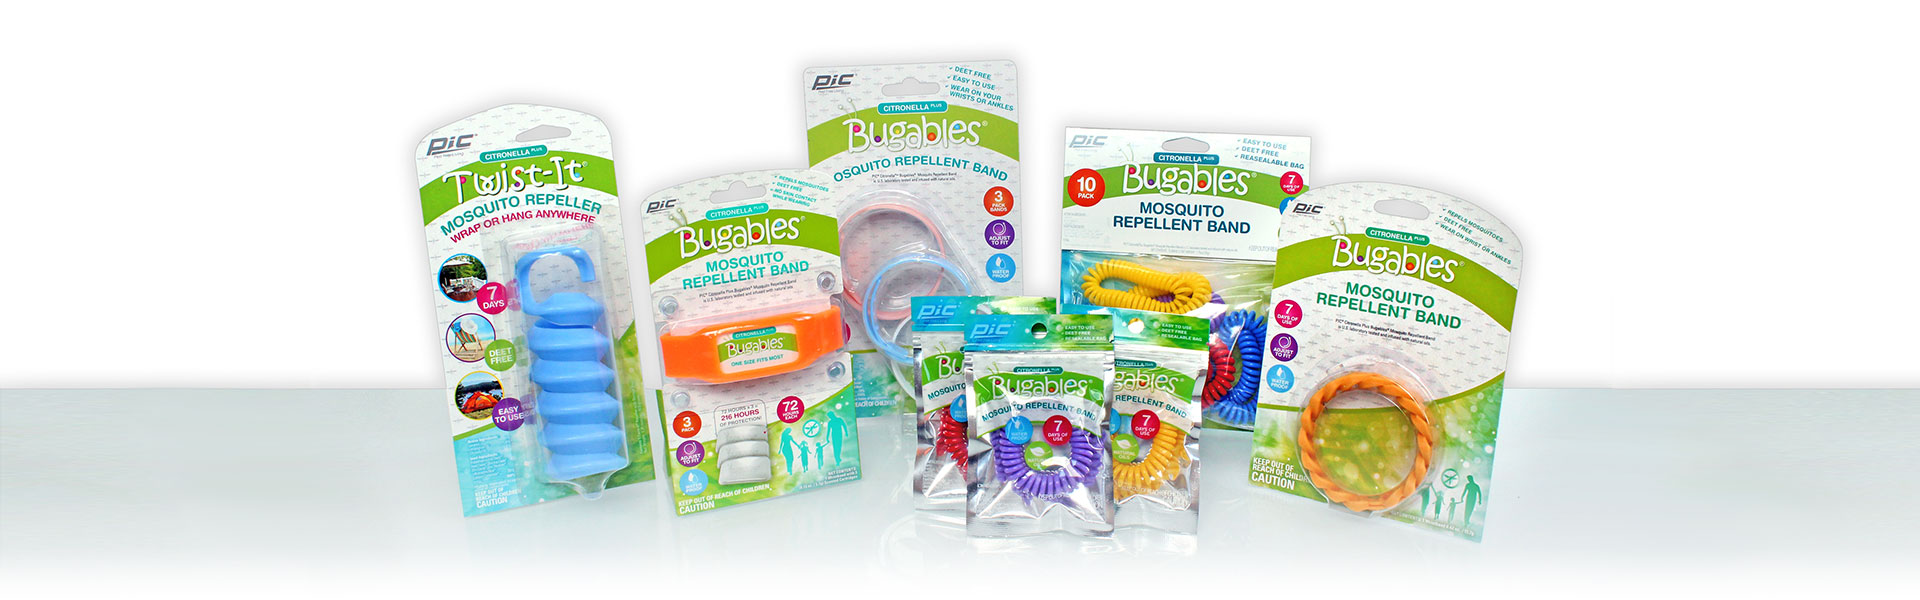 bugables mosquito repellant bands pic corporation